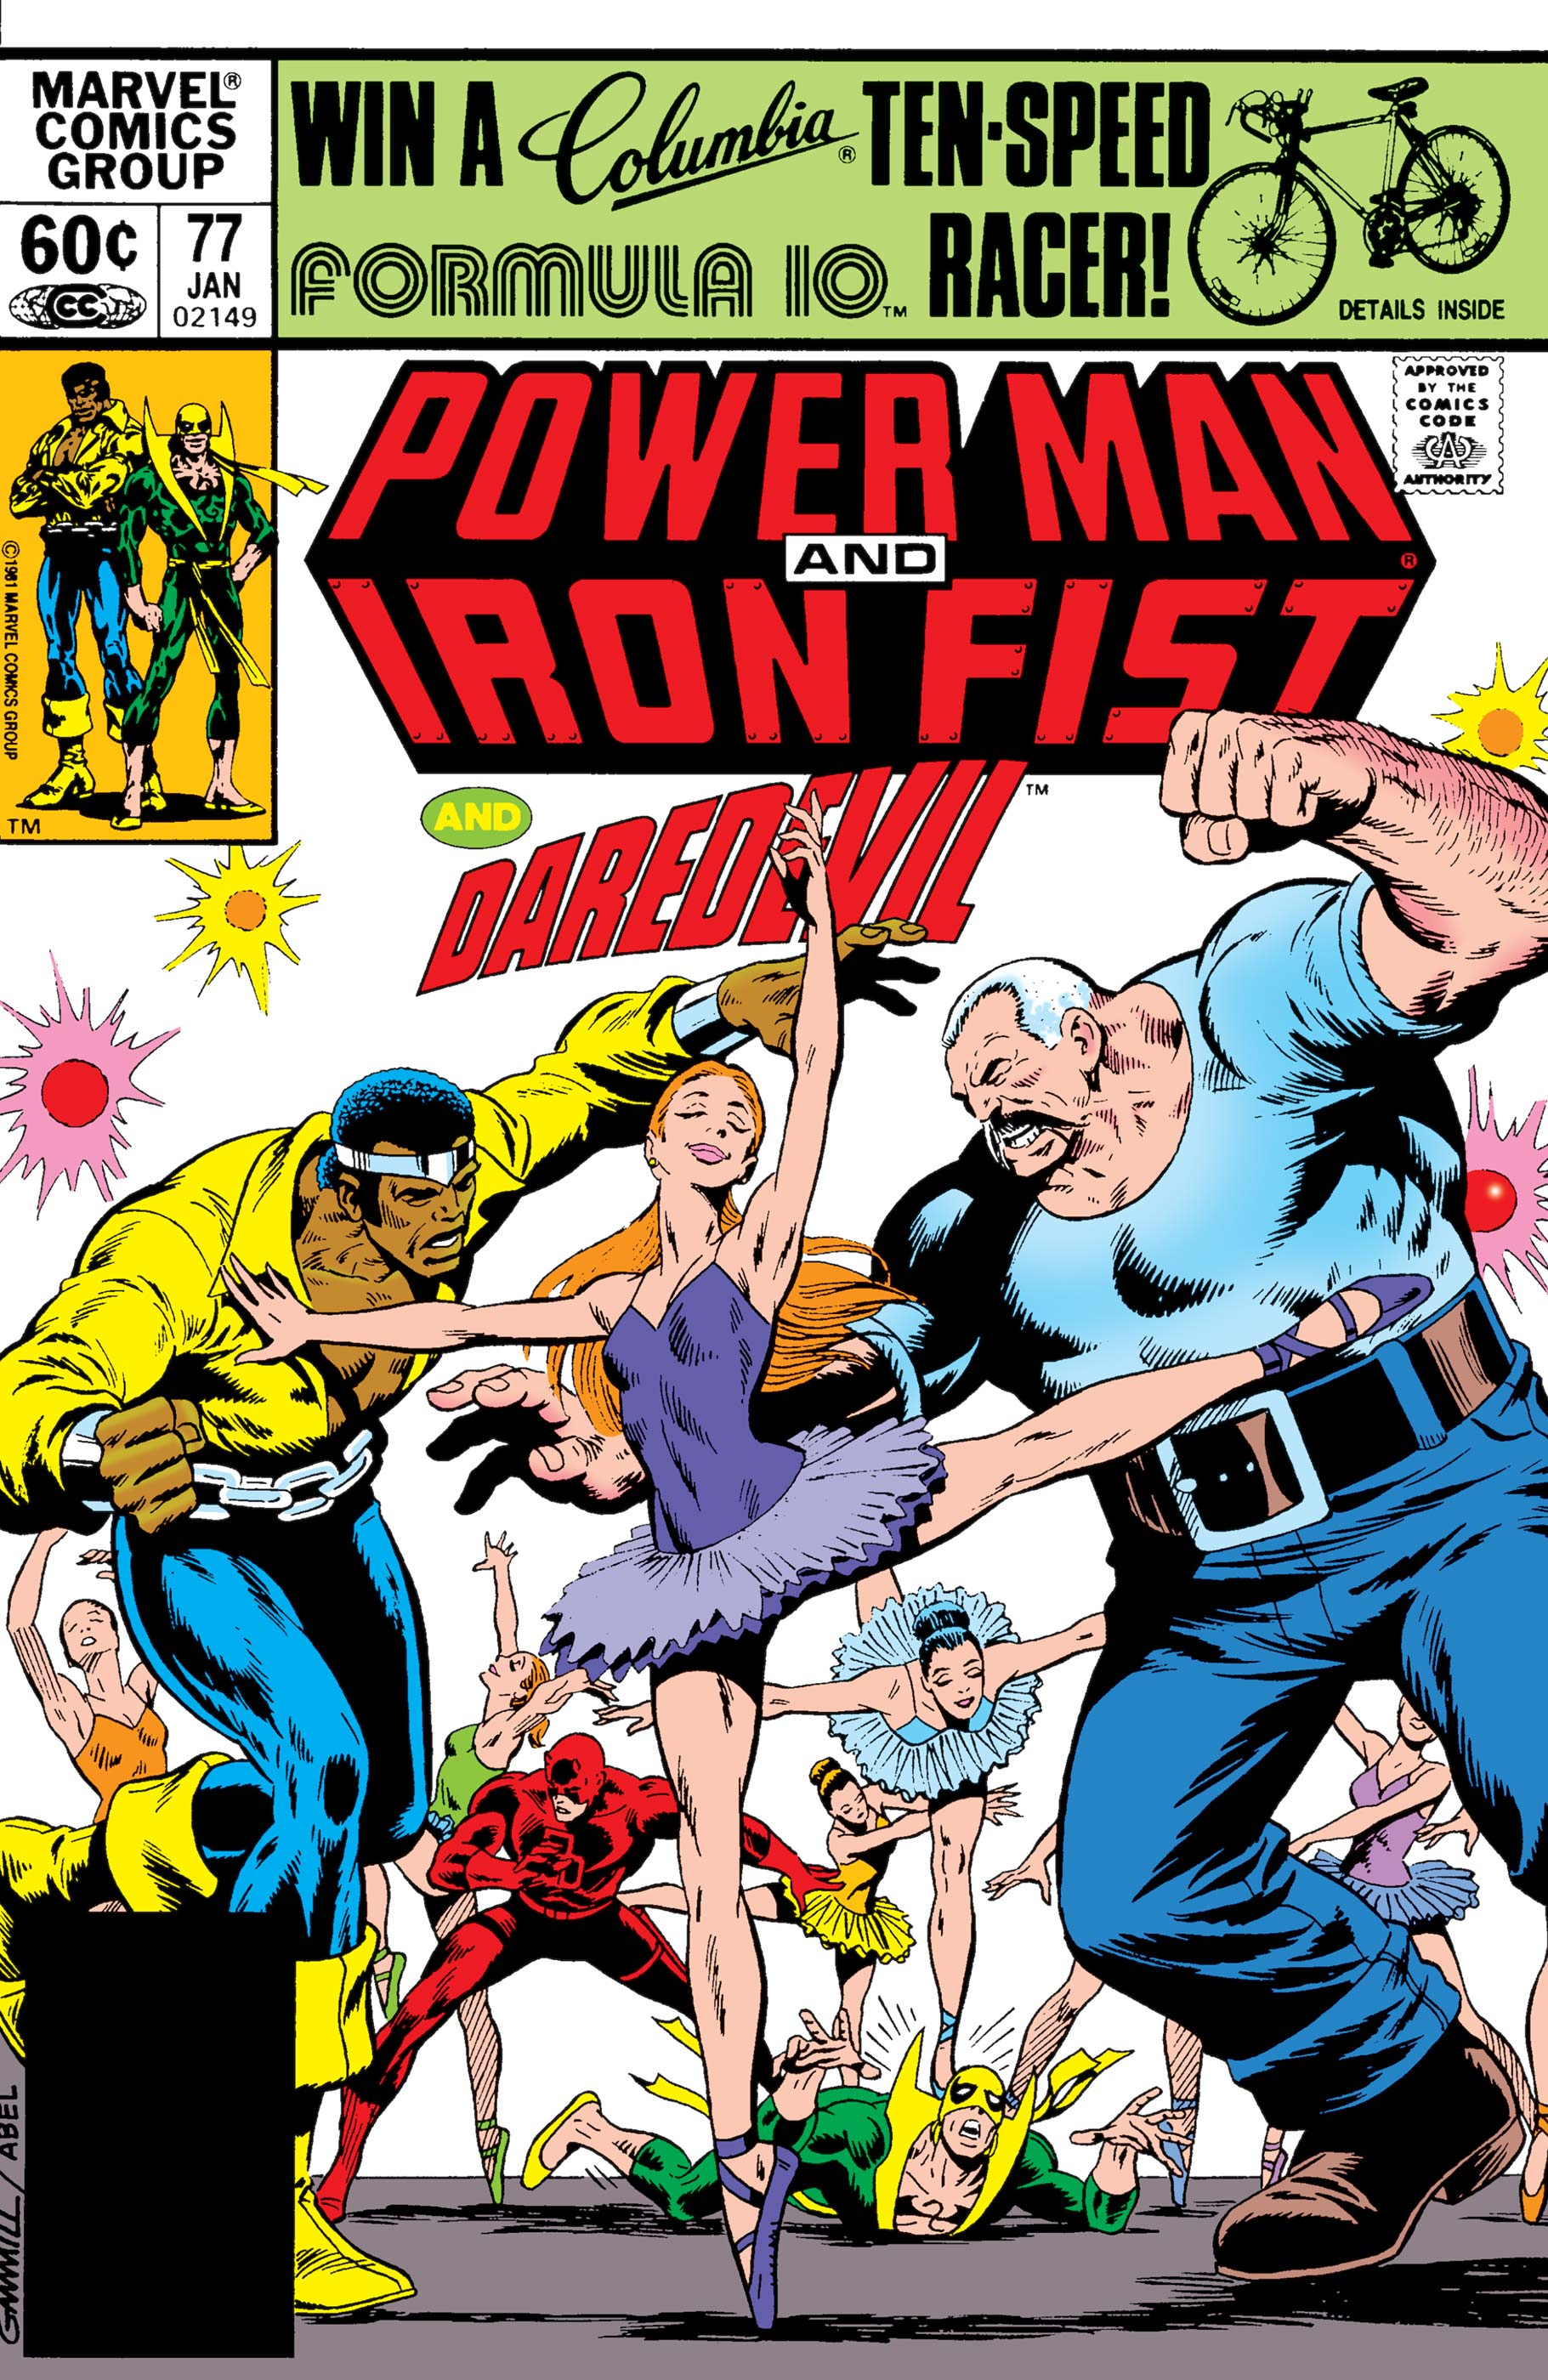 Power Man and Iron Fist (1978) #77